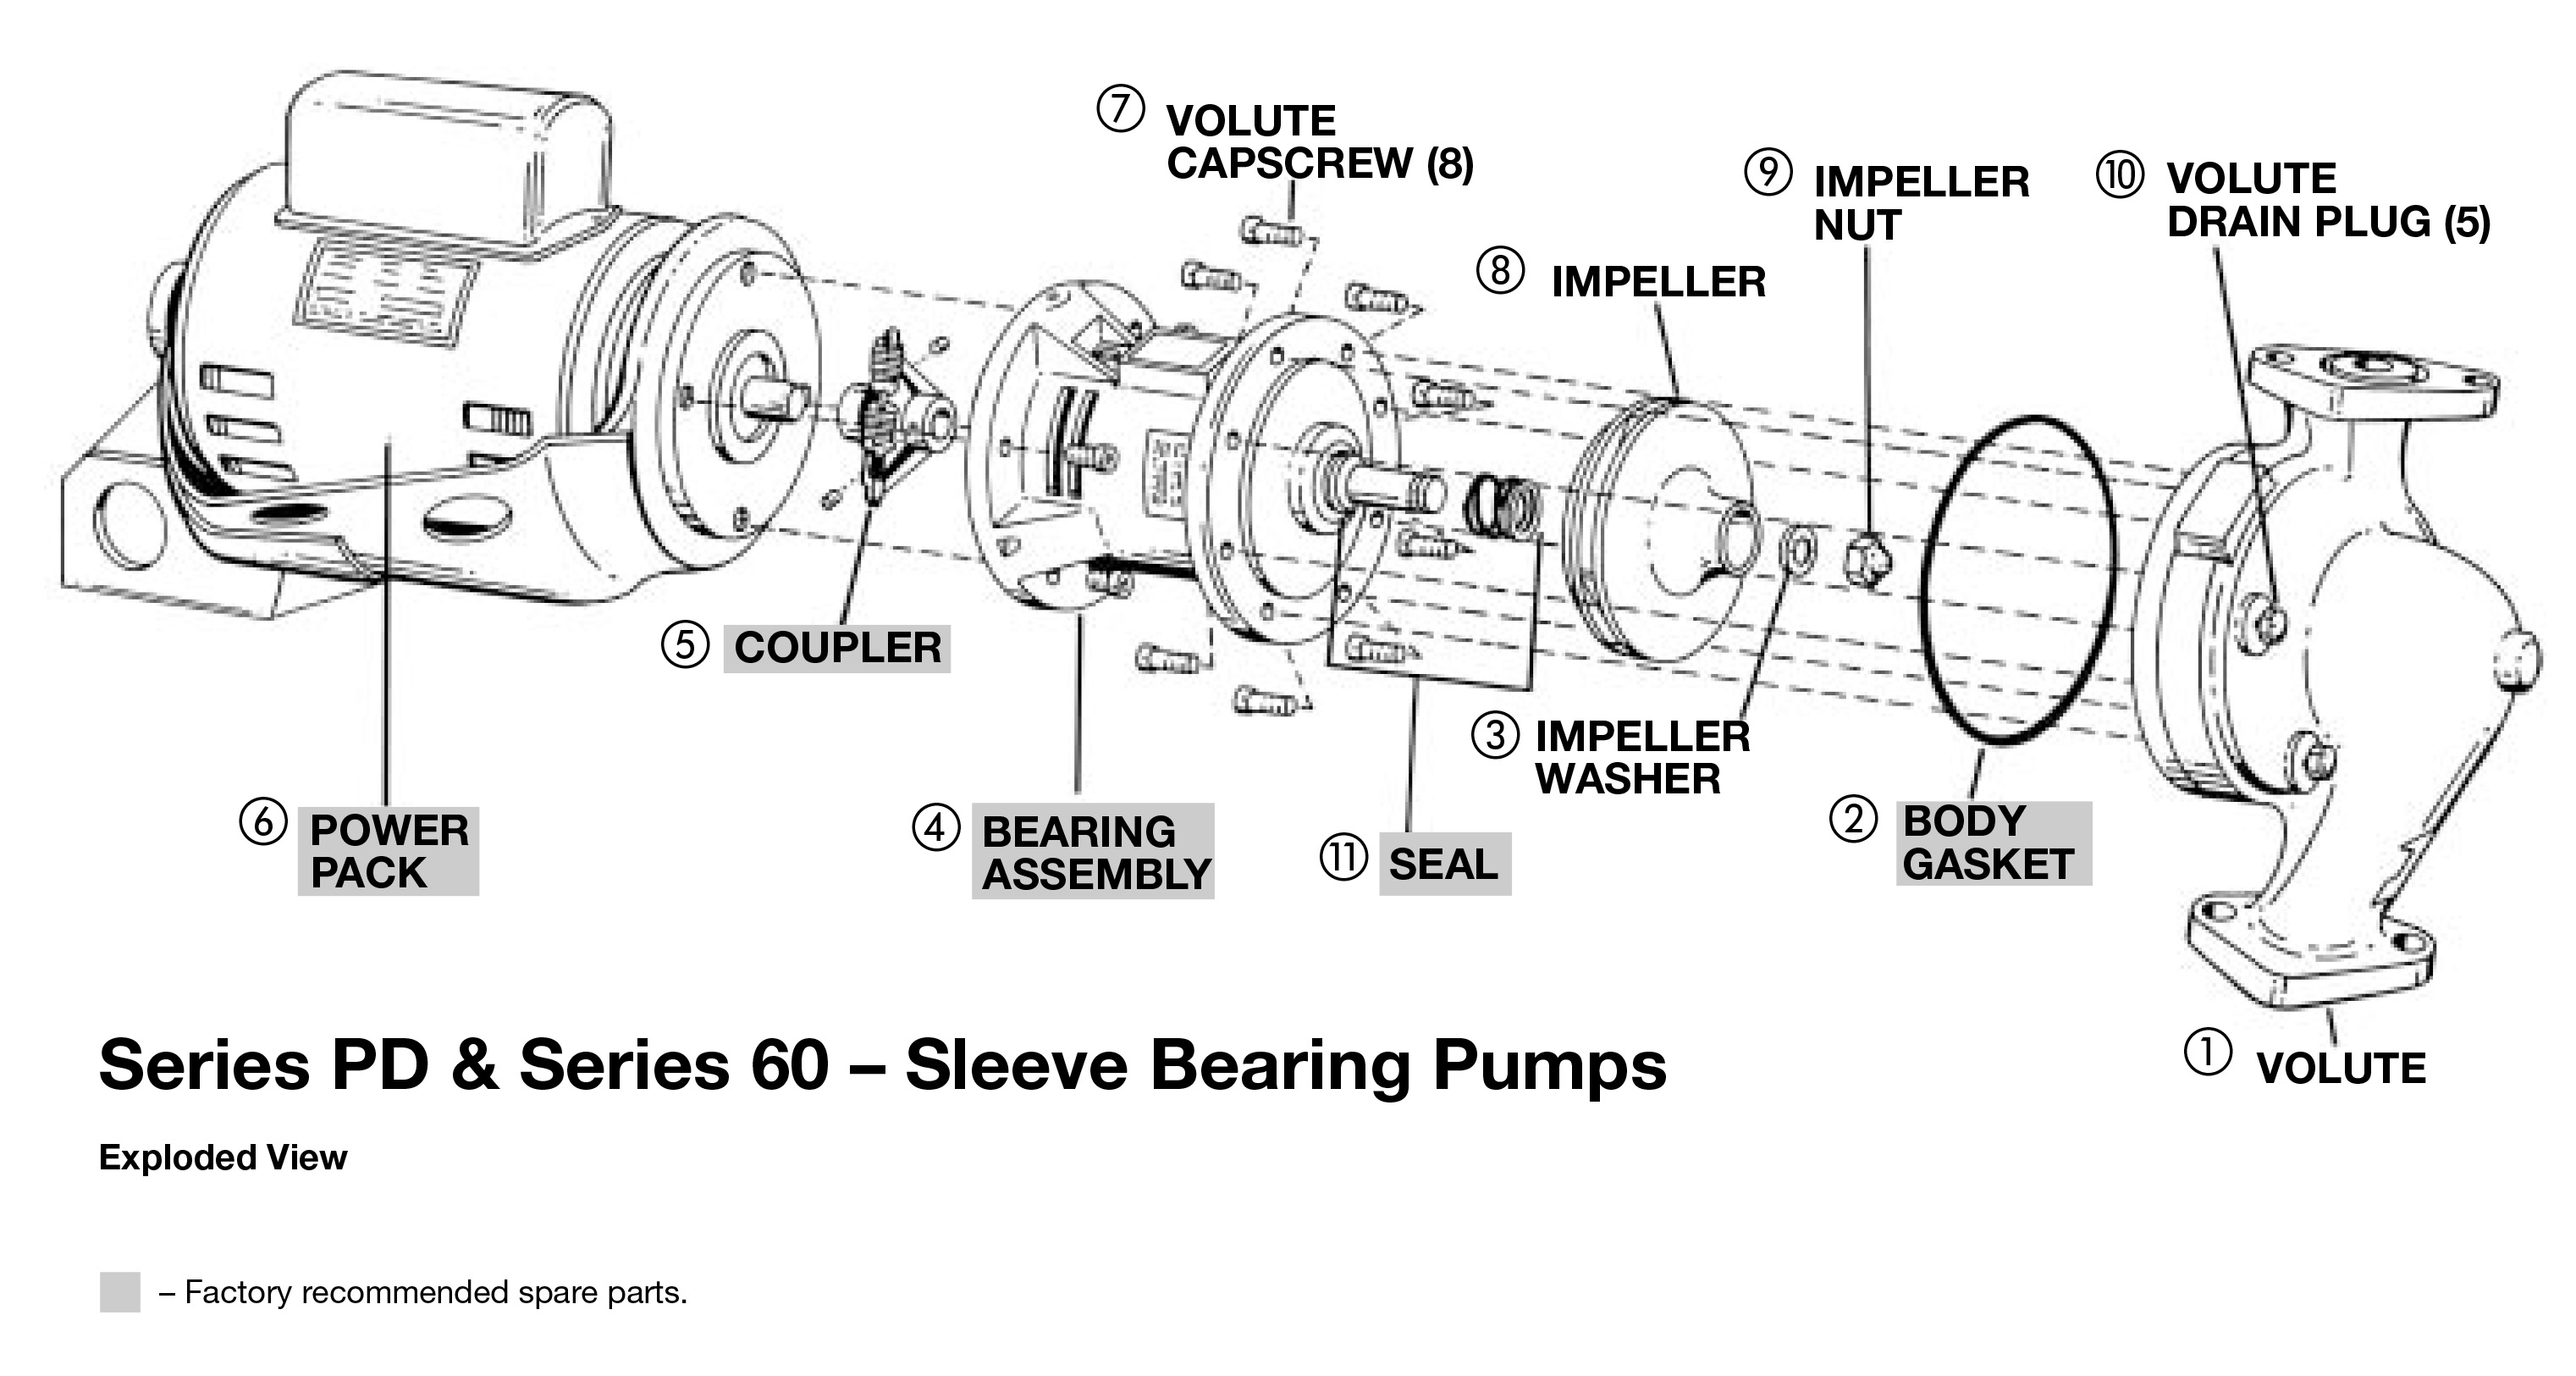 bell gossett series 60 in line centrifugal pumps bell gossett series pd 60 sleeve bearing pumps exploded view